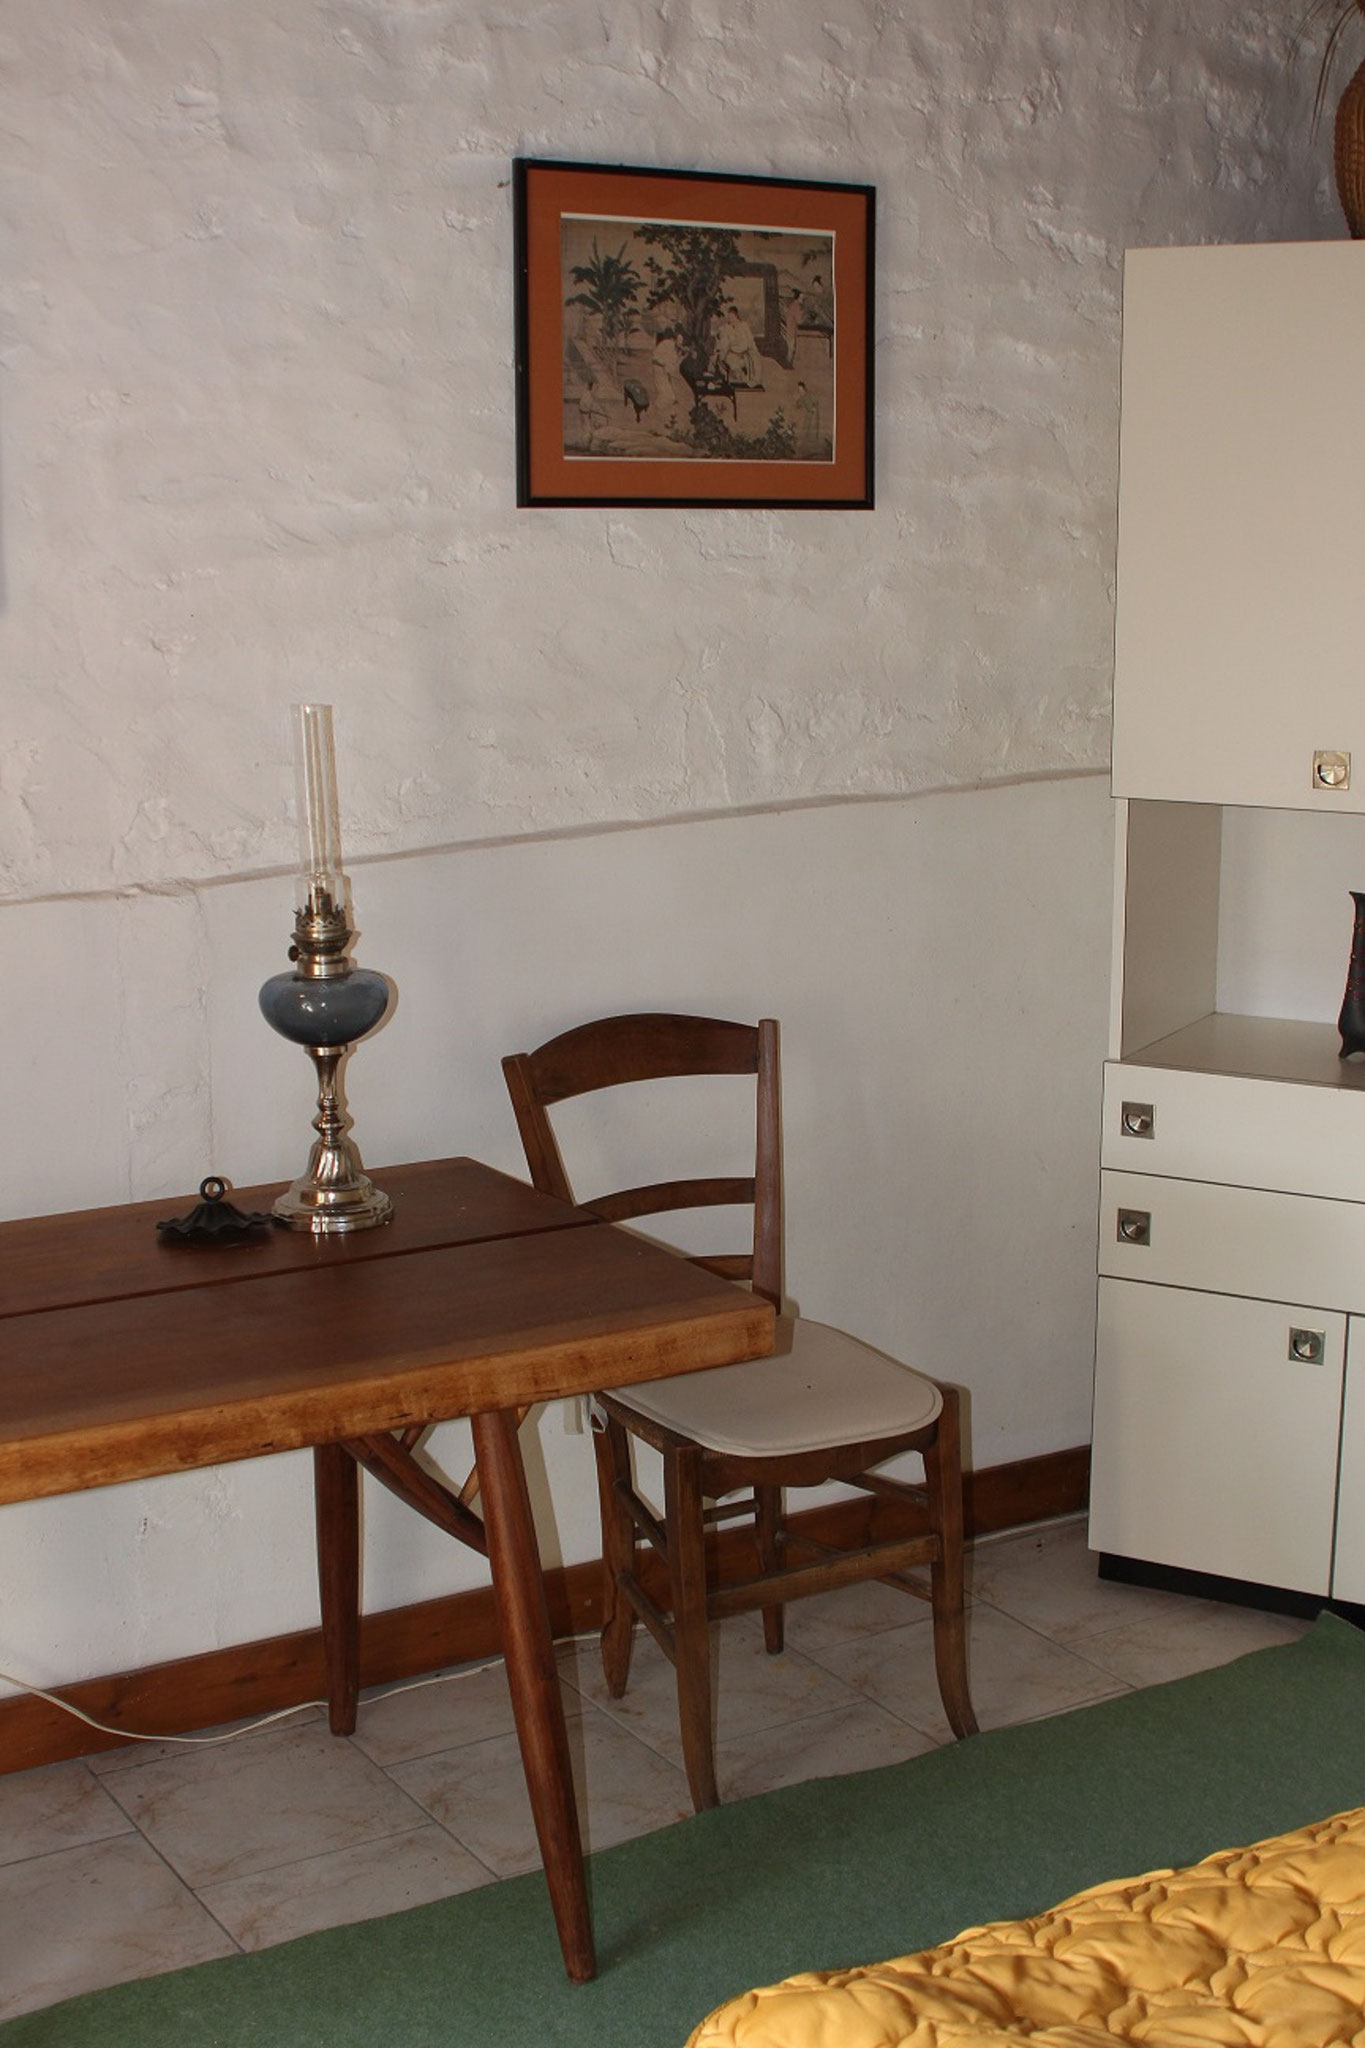 On the ground floor, bedroom n ° 2, with one bed, view on the work corner